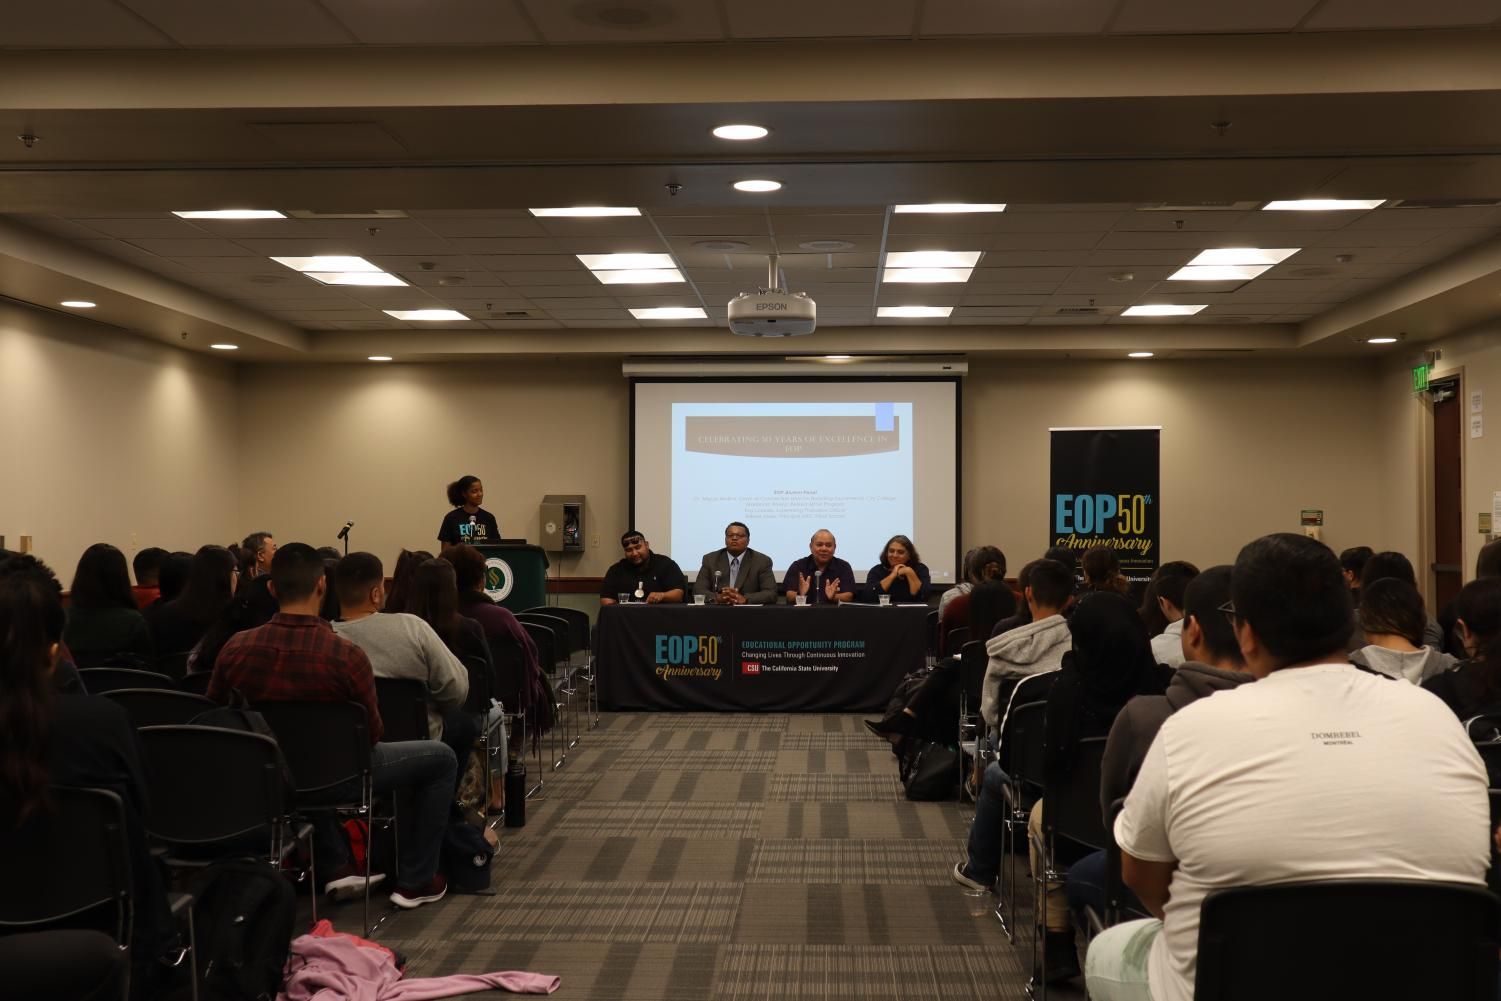 Sac State Alumni tell current students about their experiences at EOP's Open Mic Event Monday. The event was part of the celebration of the program's 50th anniversary.